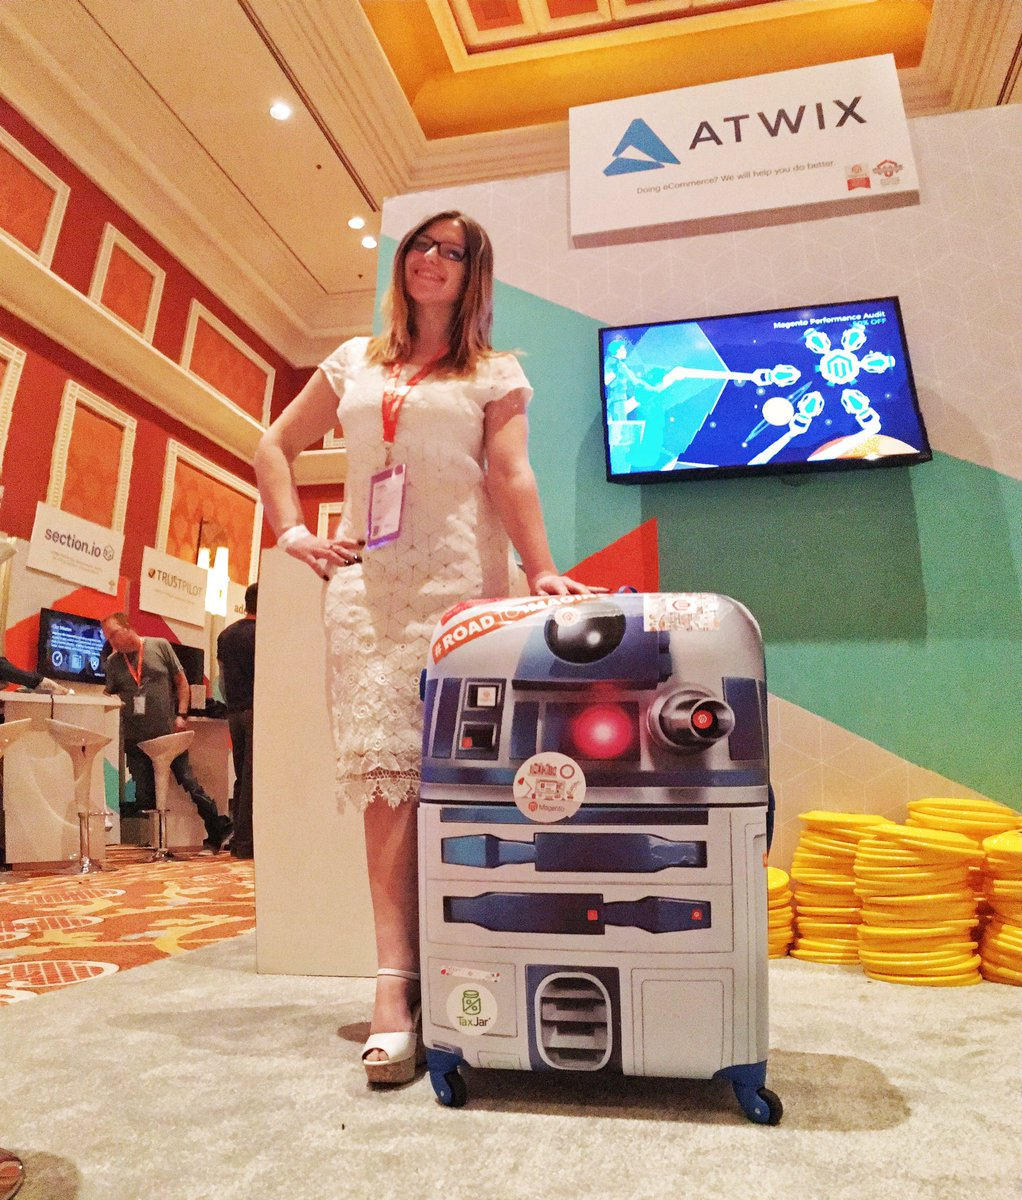 atwixcom: Have a sticker? Come stick our R2D2 up and get some beautiful swag! #Magentoimagine https://t.co/ffgOpBFzdy